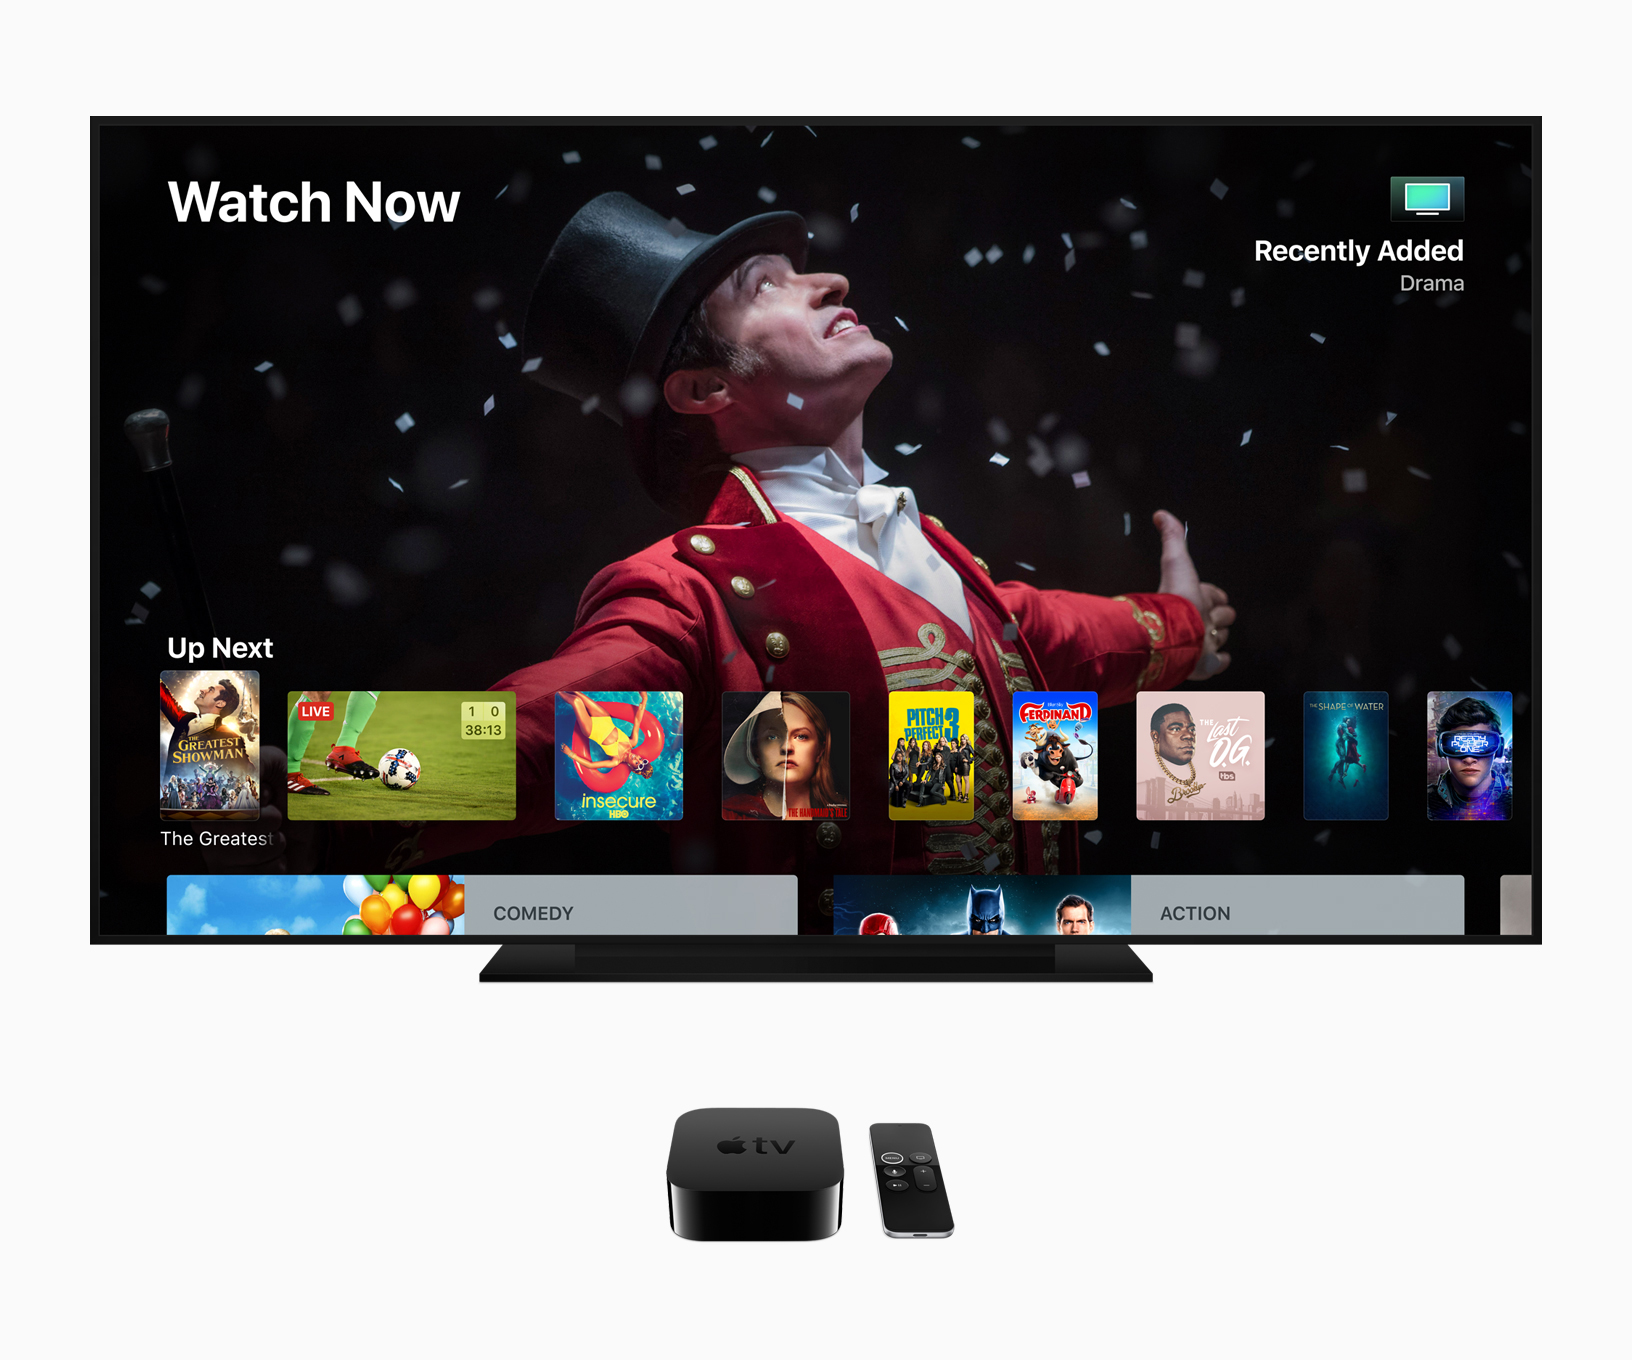 Apple_TV_4k_screen_06042018.jpg